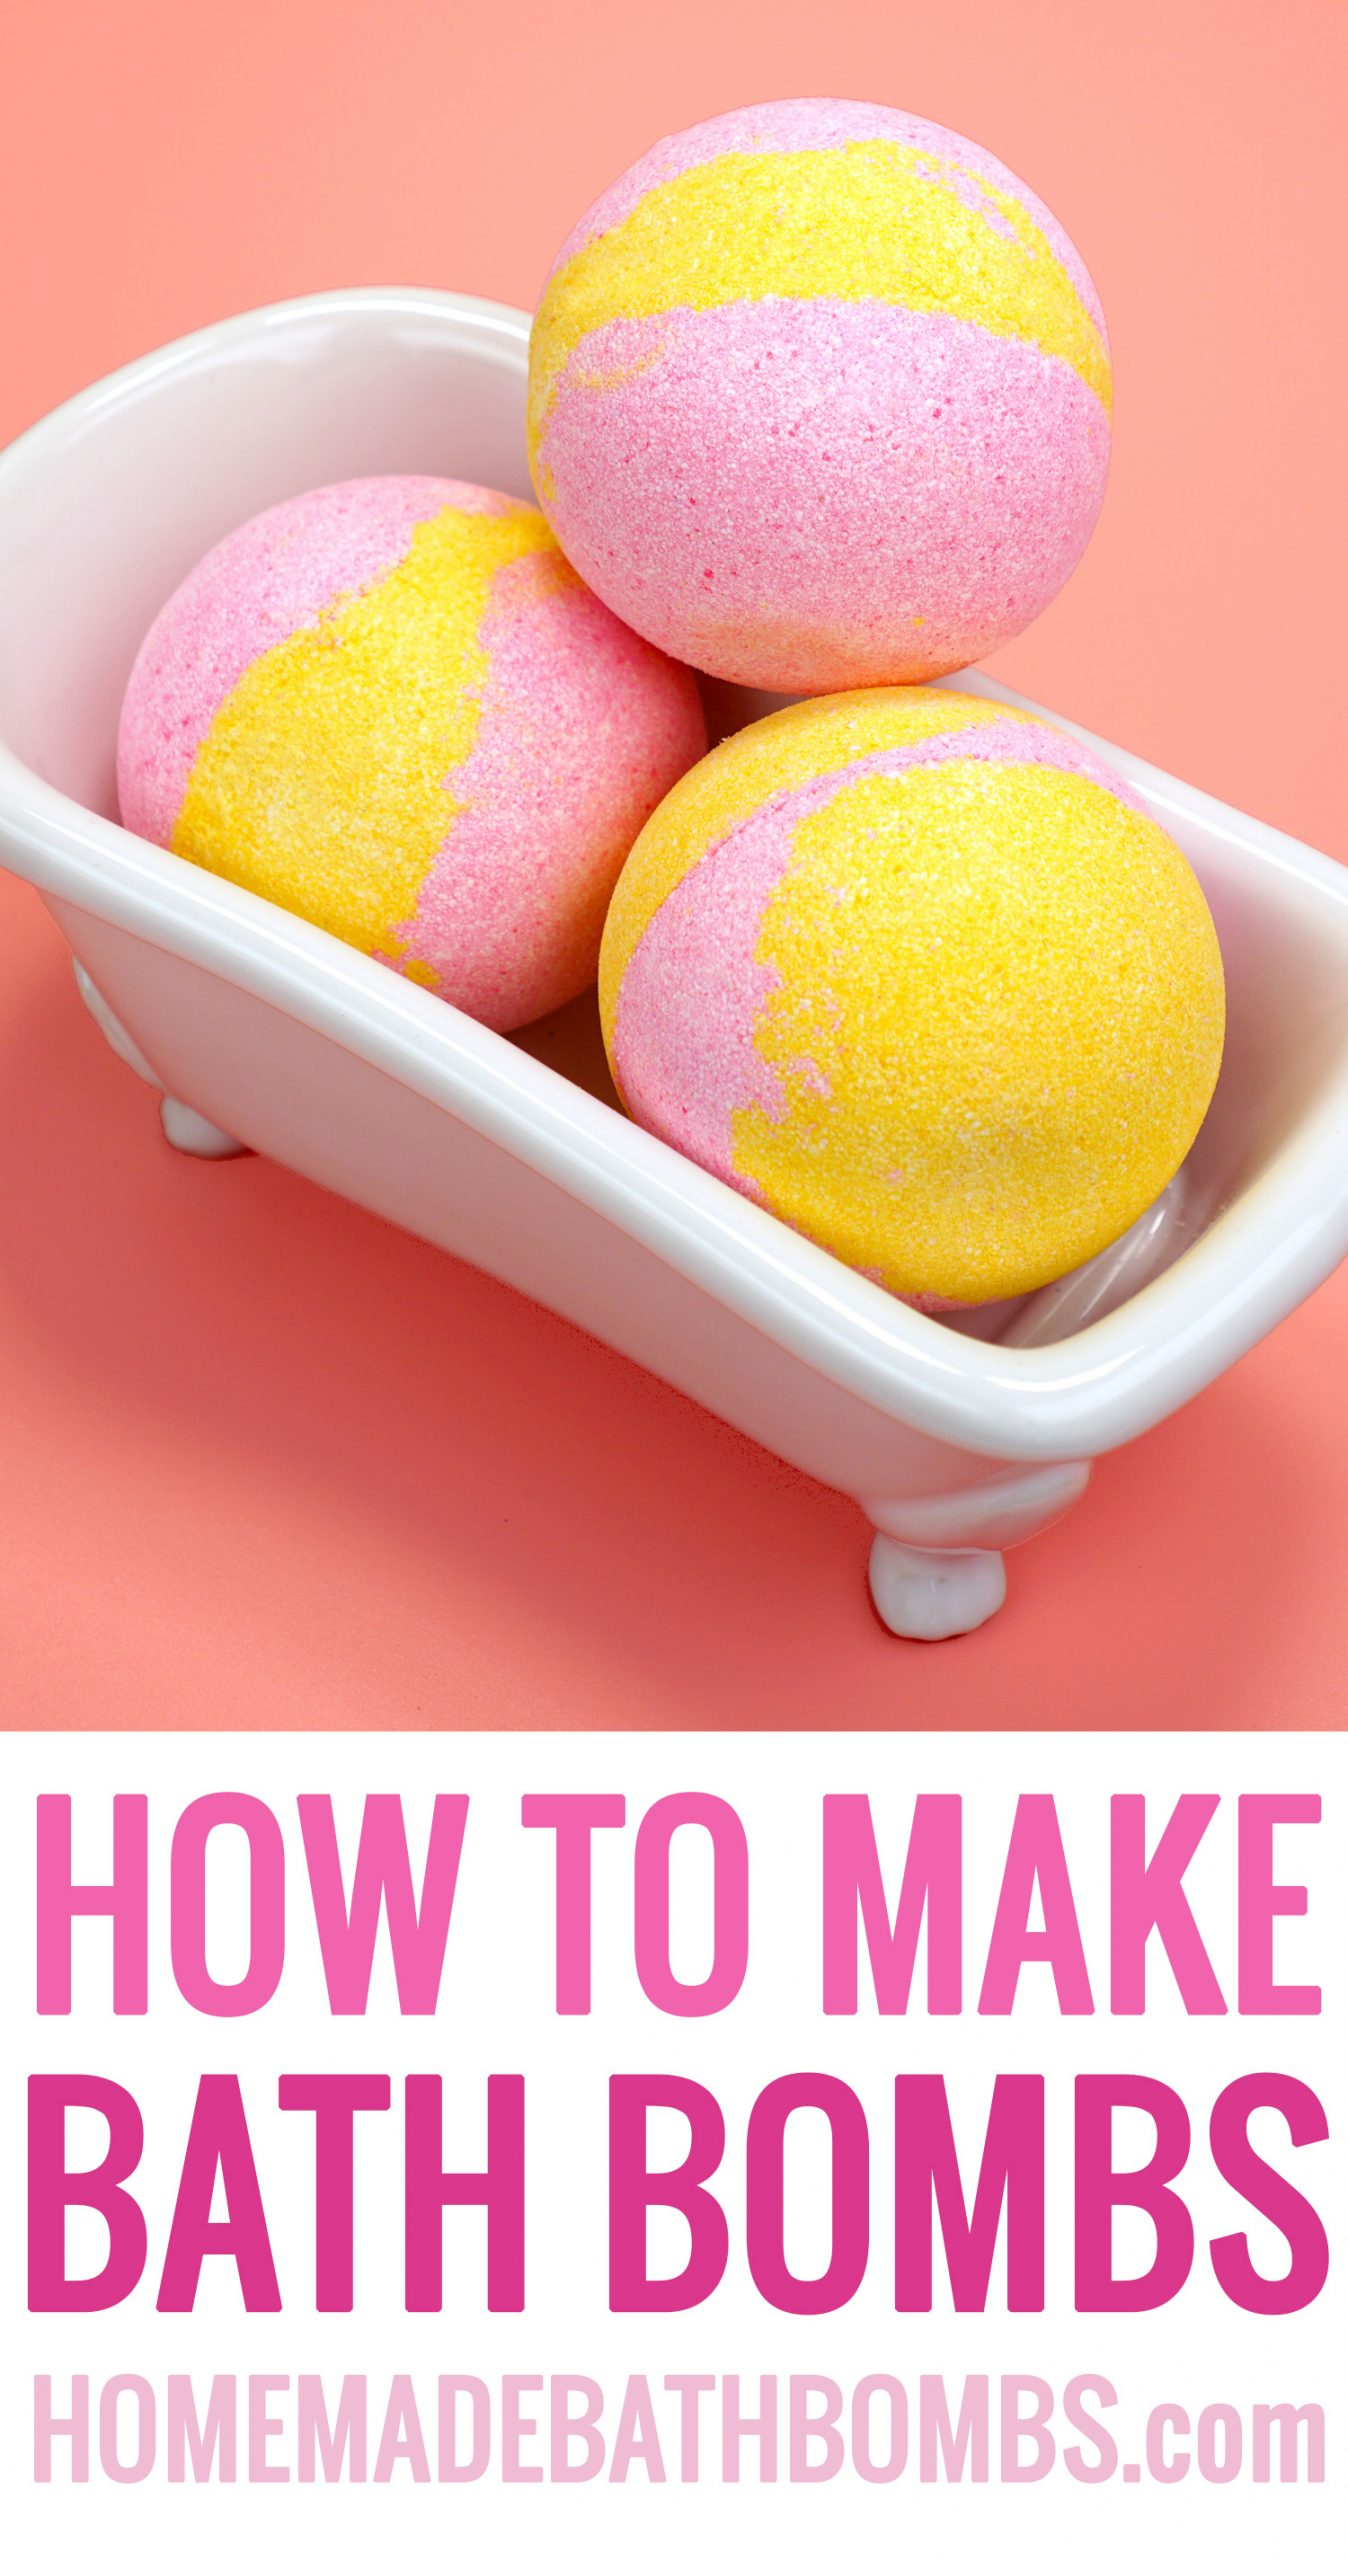 Learn how to make bath bombs with our easy-to-follow step-by-step tutorial and bath bomb recipe! DIY bath bombs make a great inexpensive homemade gift idea! via @hihomemadeblog